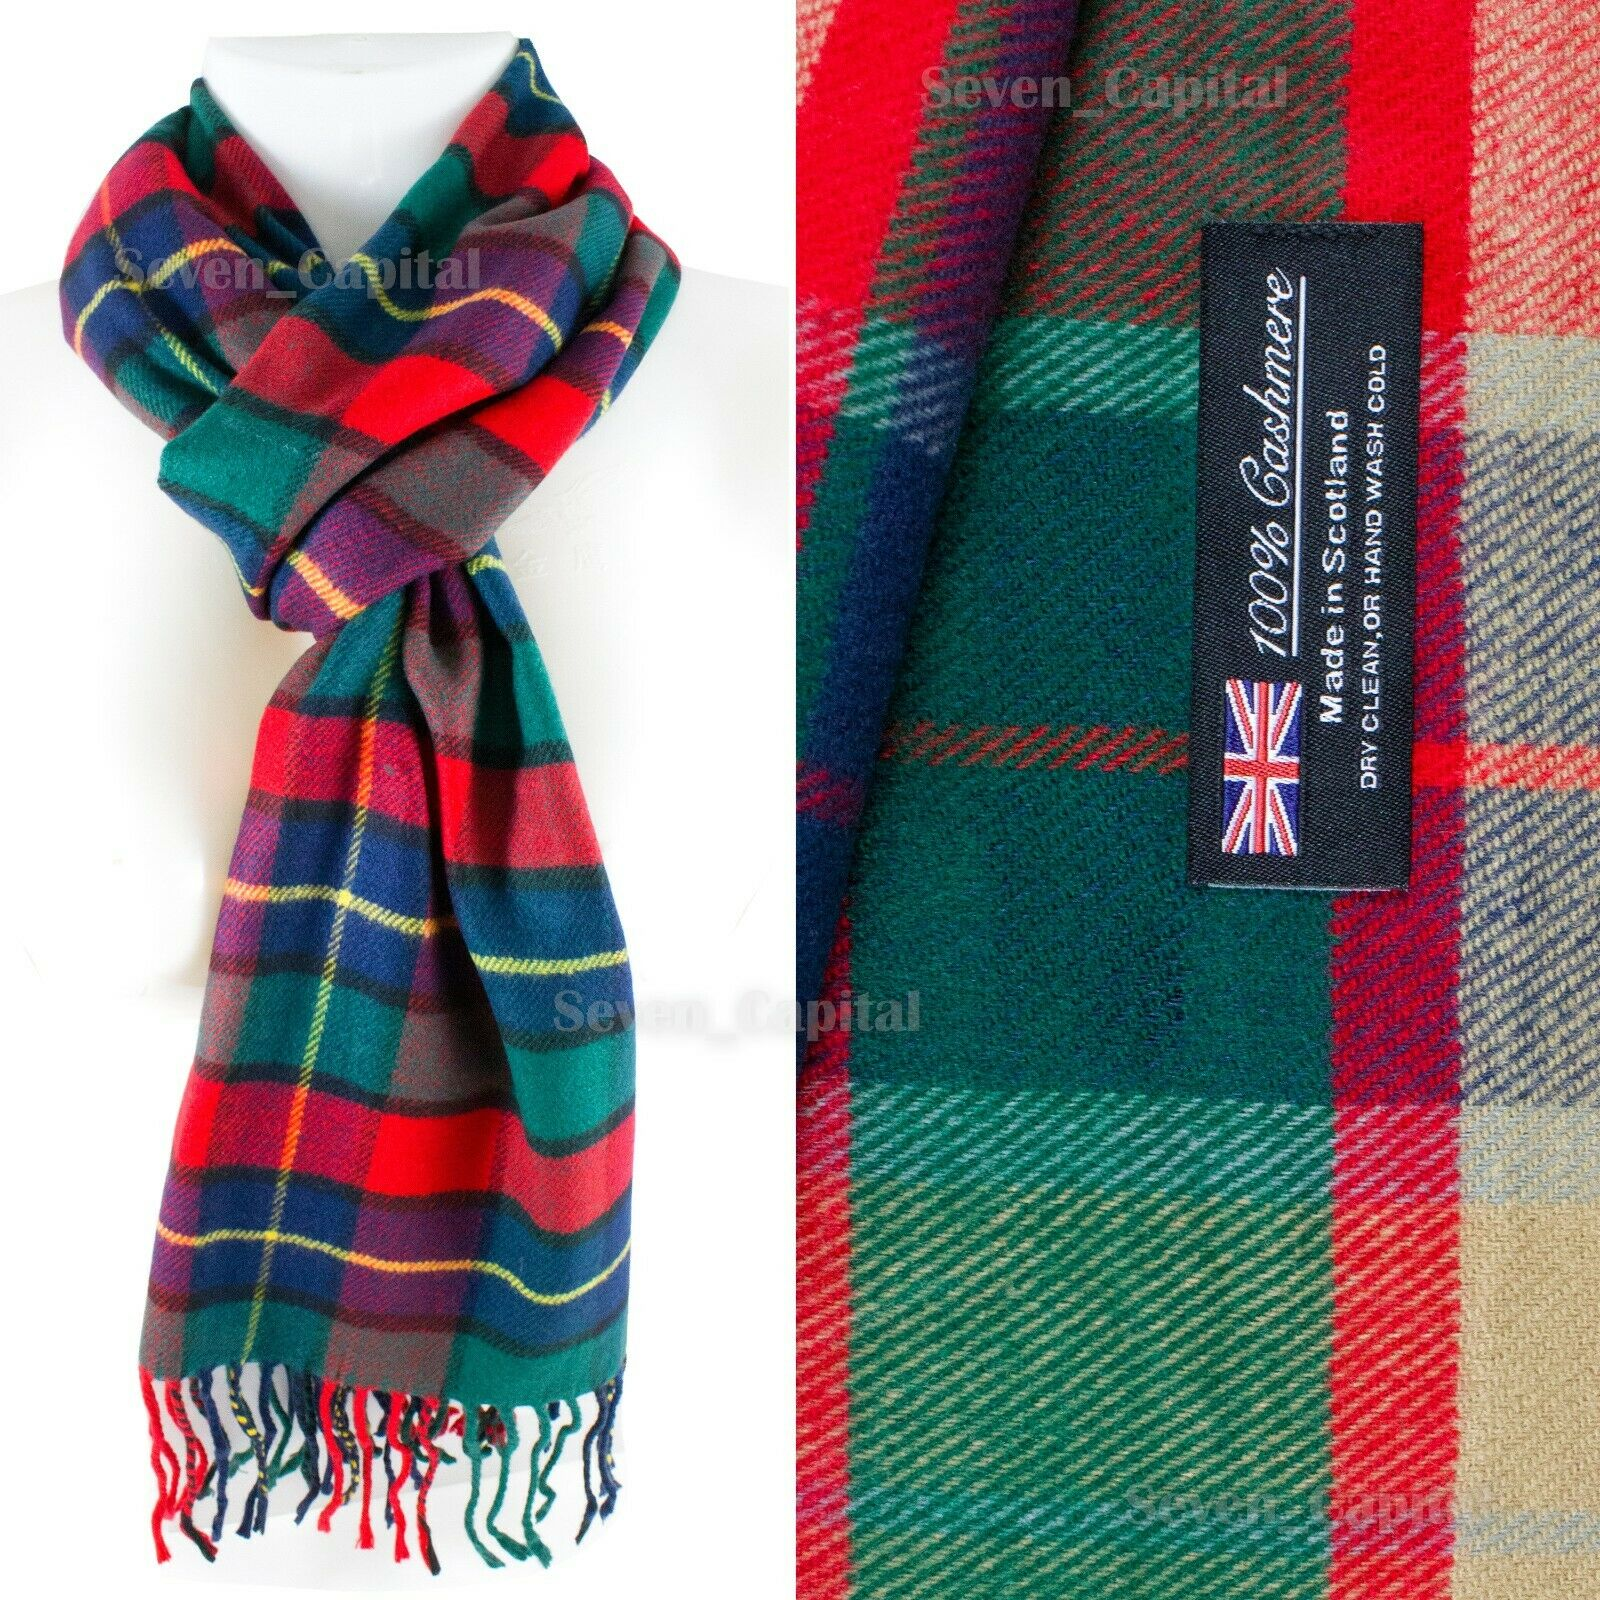 Mens Womens Winter Warm SCOTLAND Made 100% CASHMERE Scarf Scarves Plaid Wool 36. Plaid: Red/Green/Blue